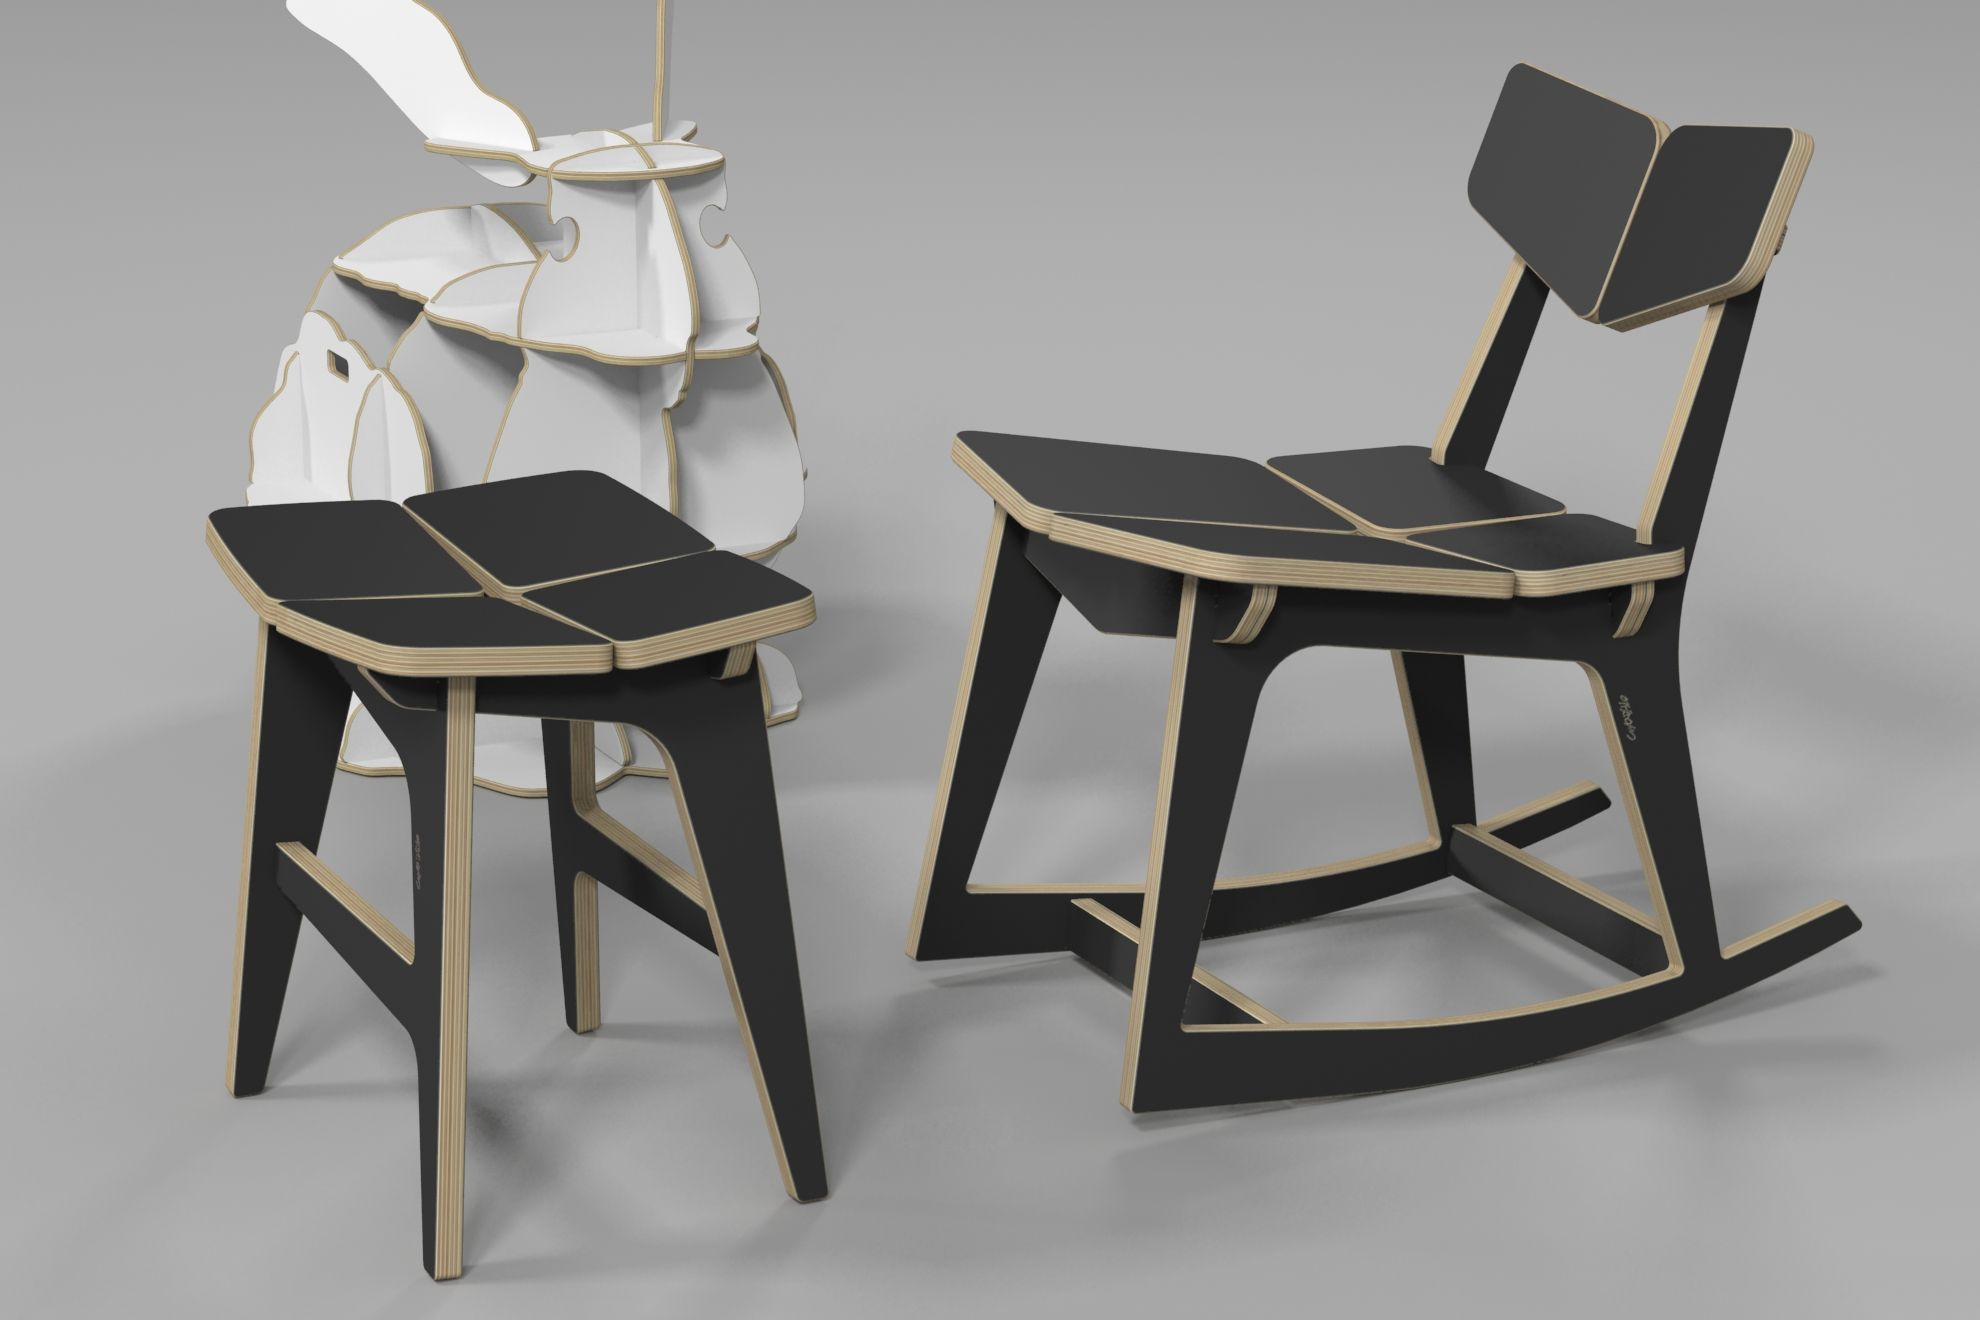 TETRA ROCKING CHAIR / CNC ROUTER / PLYWOOD FURNITURE